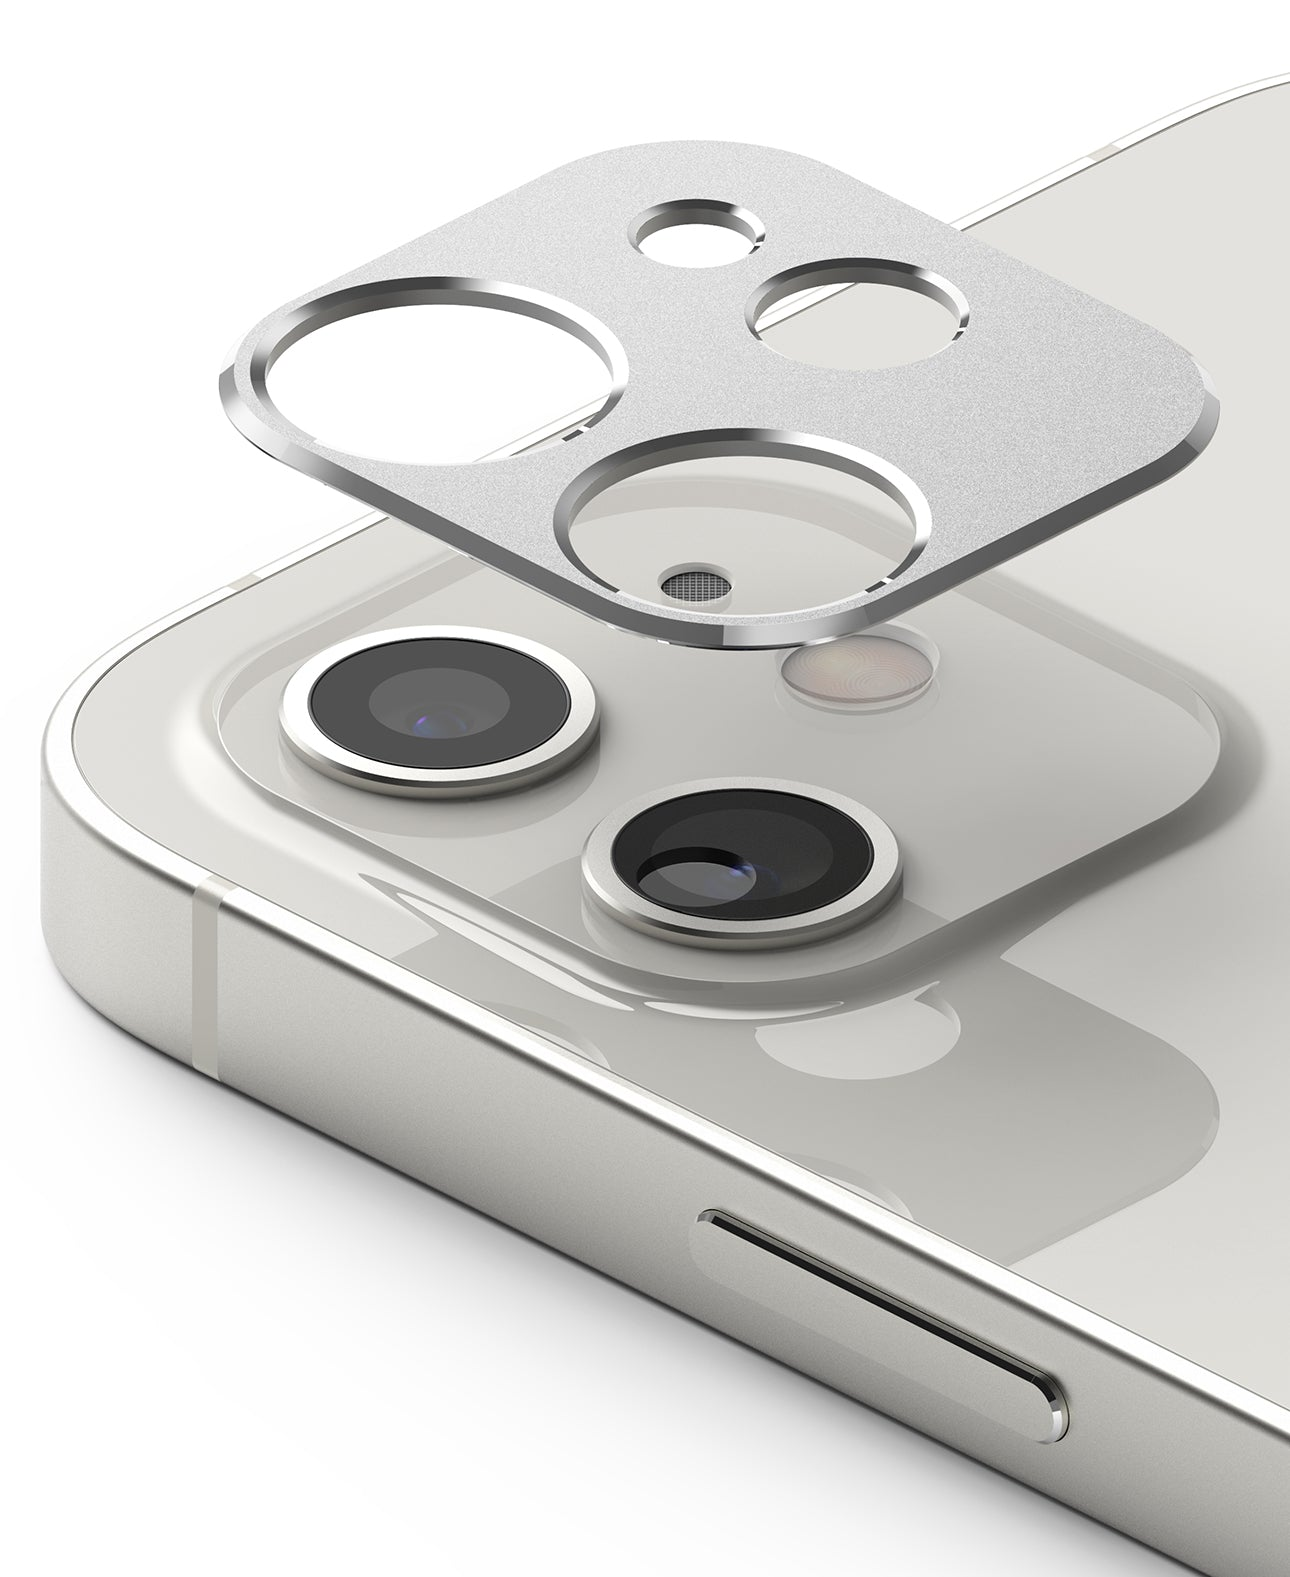 ringke camera styling for iphone 12 - silver